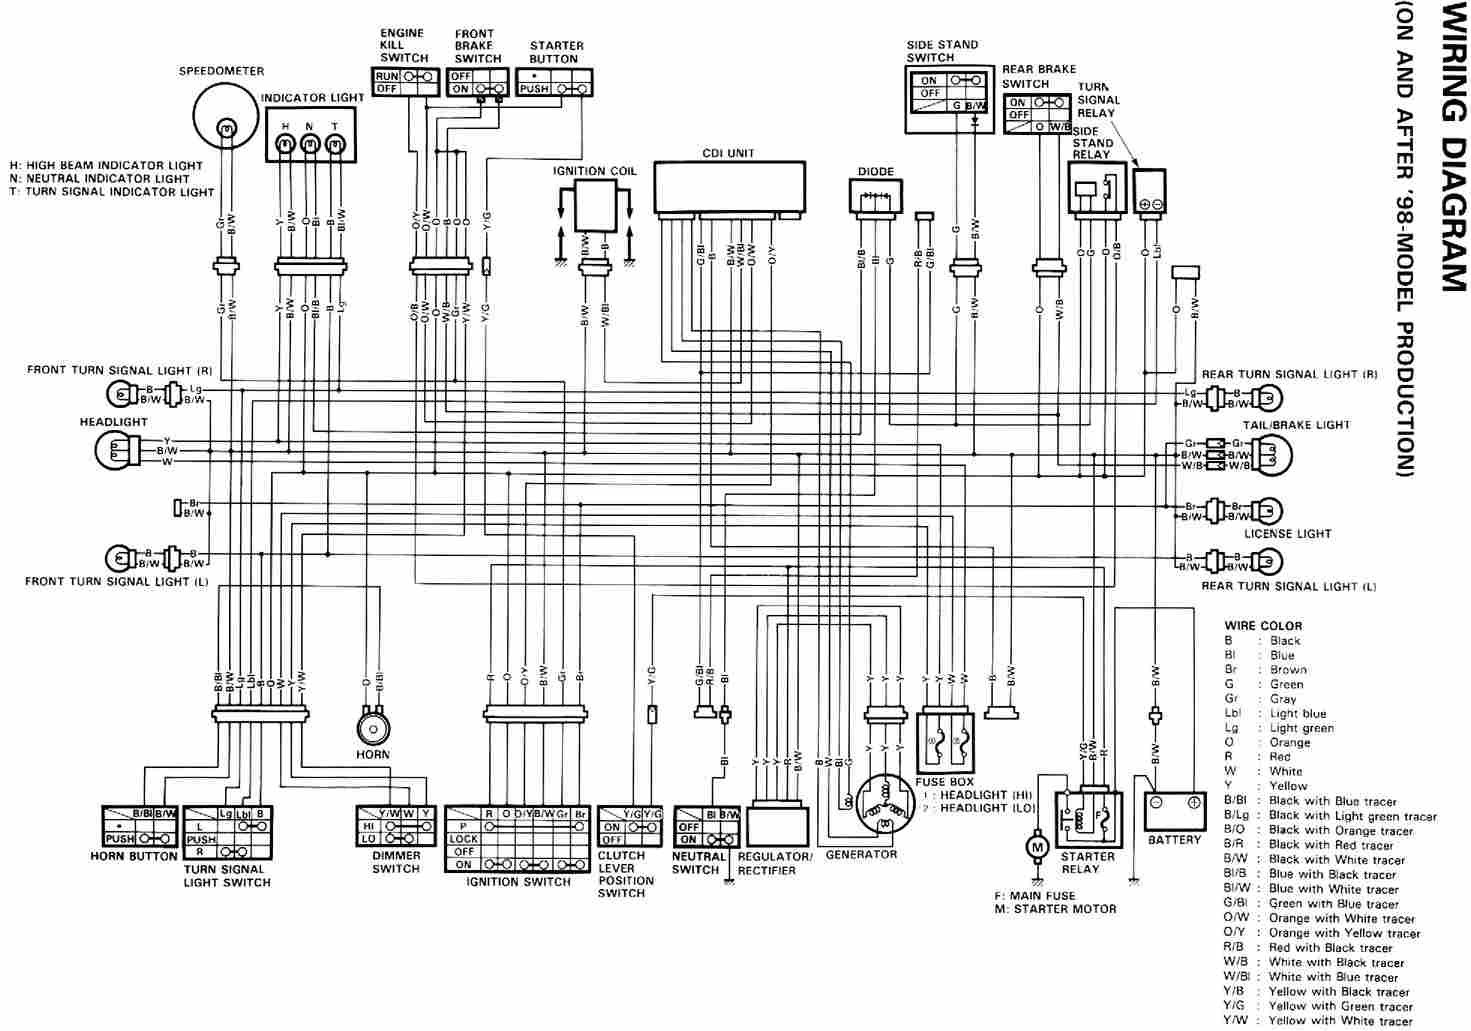 volvo vnl64t wiring diagram another blog about wiring diagram u2022 rh ok2 infoservice ru